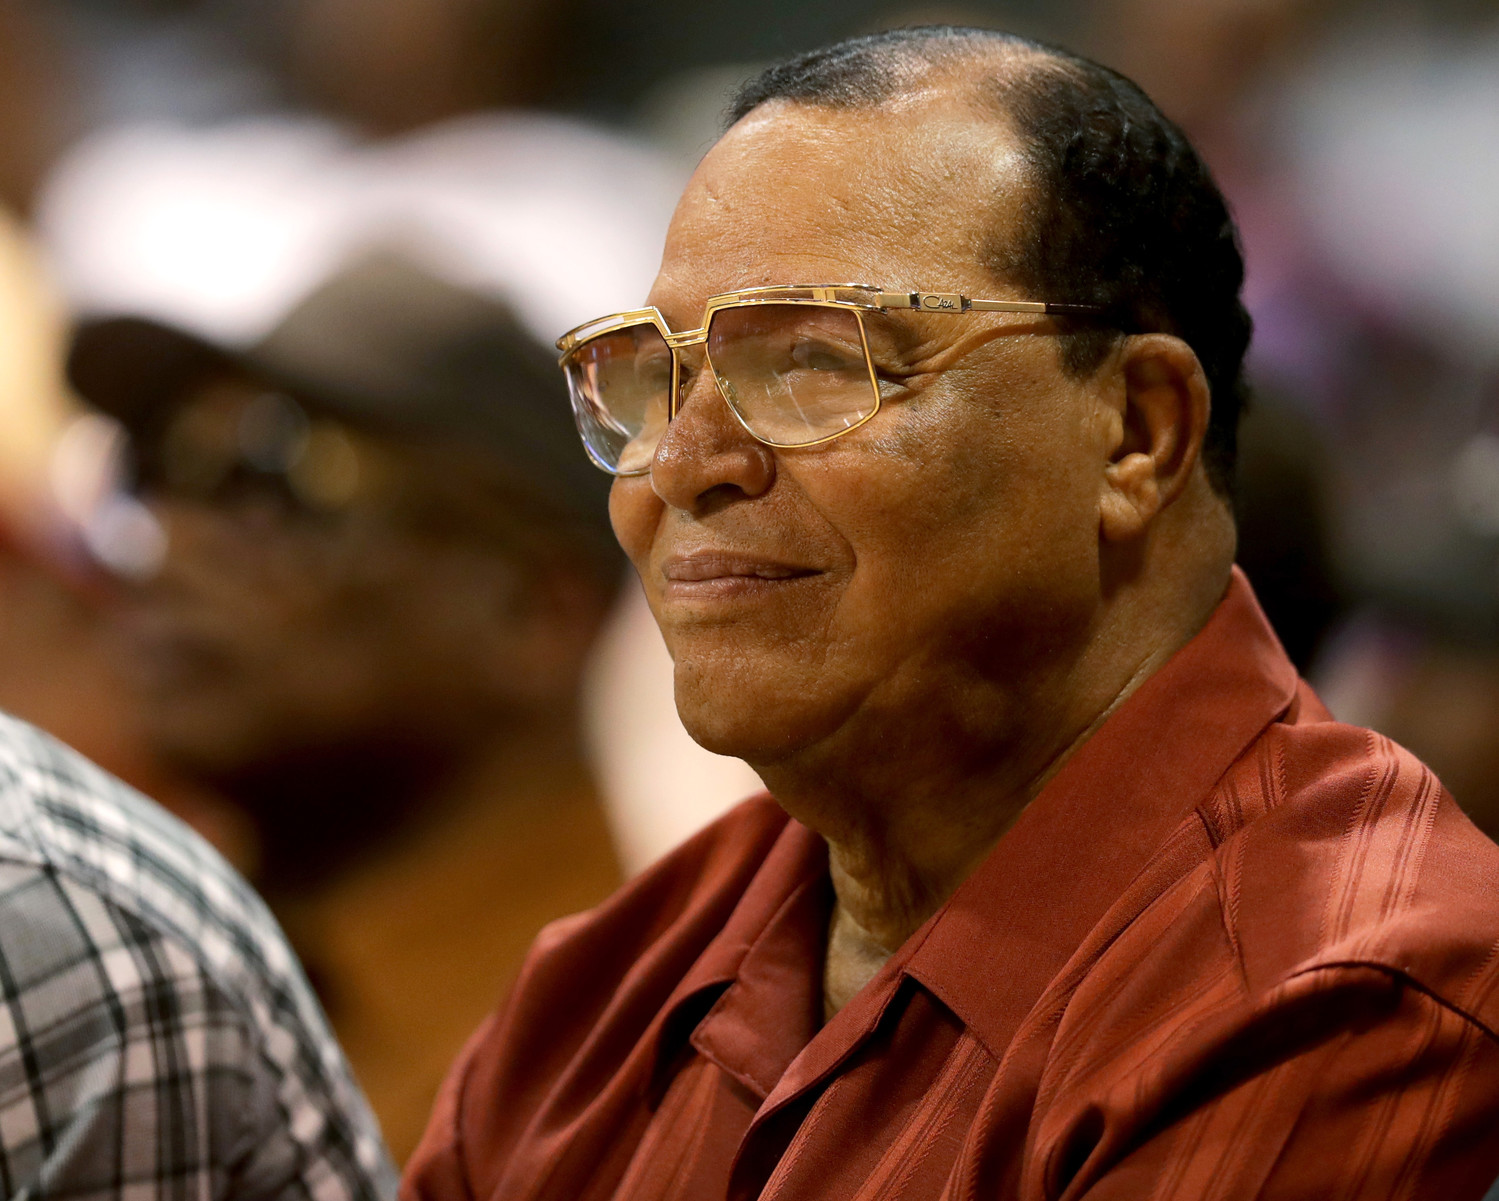 Louis Farrakhan at a basketball game in Chicago in July 2017.